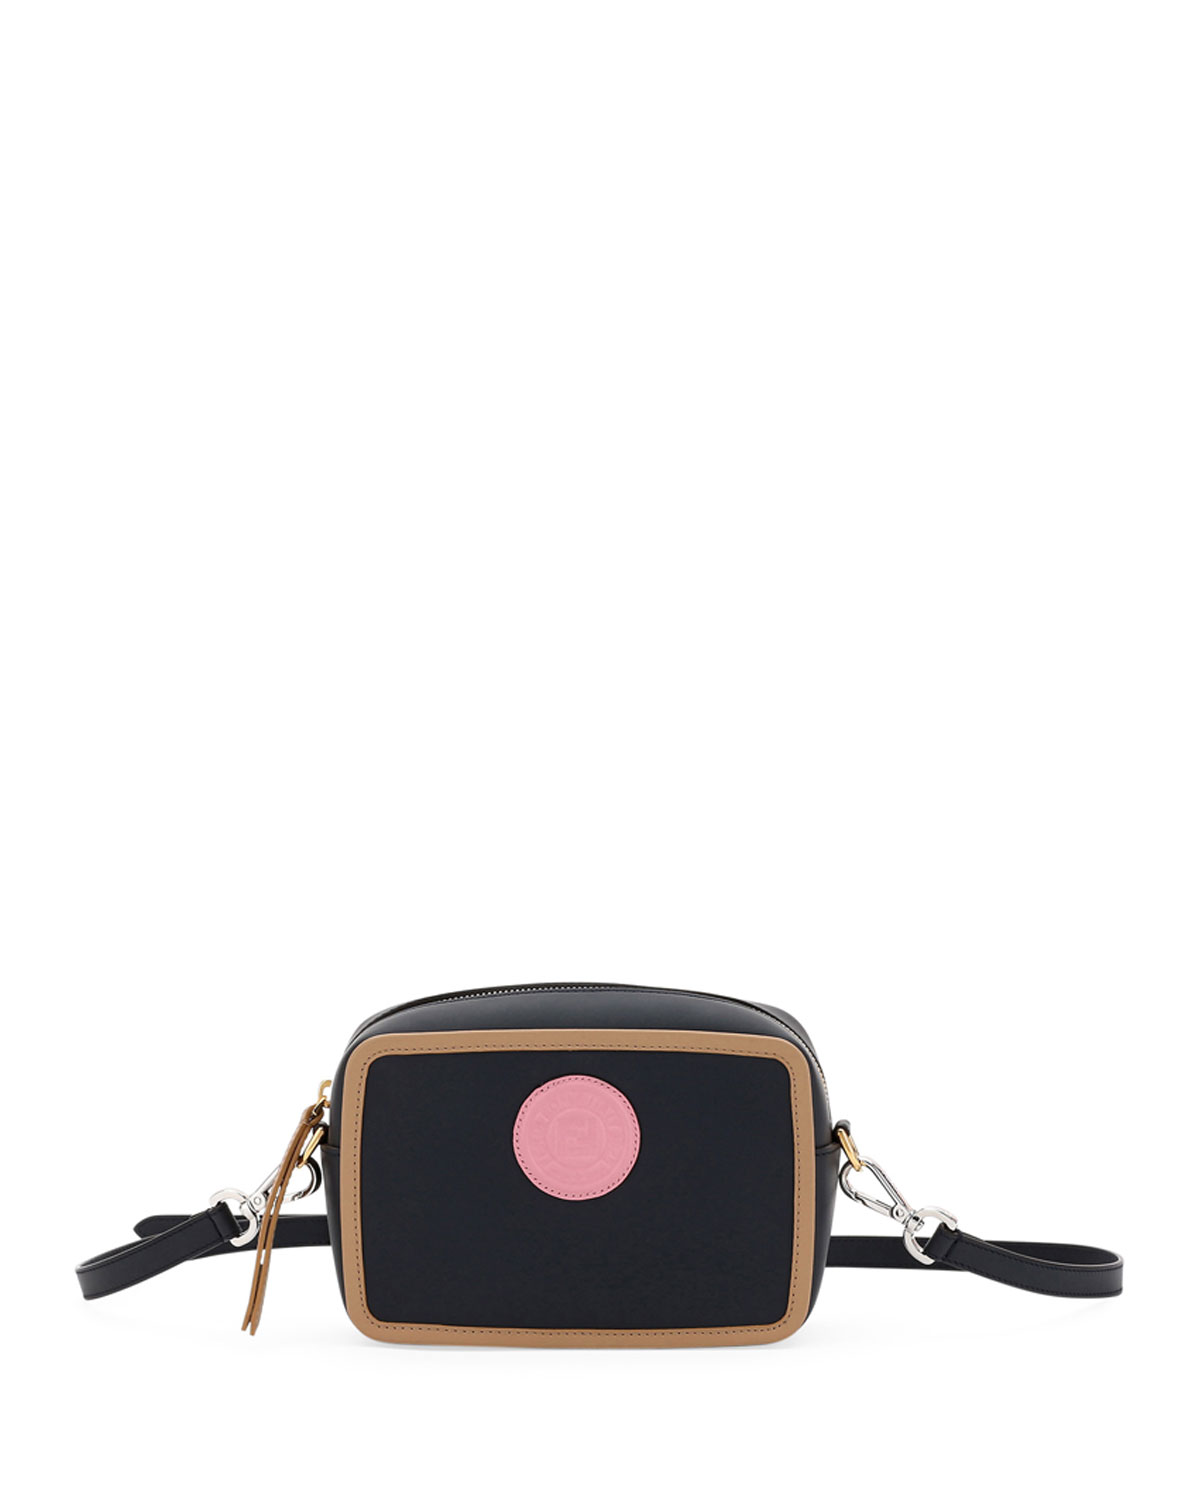 CAM CALF LEATHER CROSSBODY BAG from Neiman Marcus